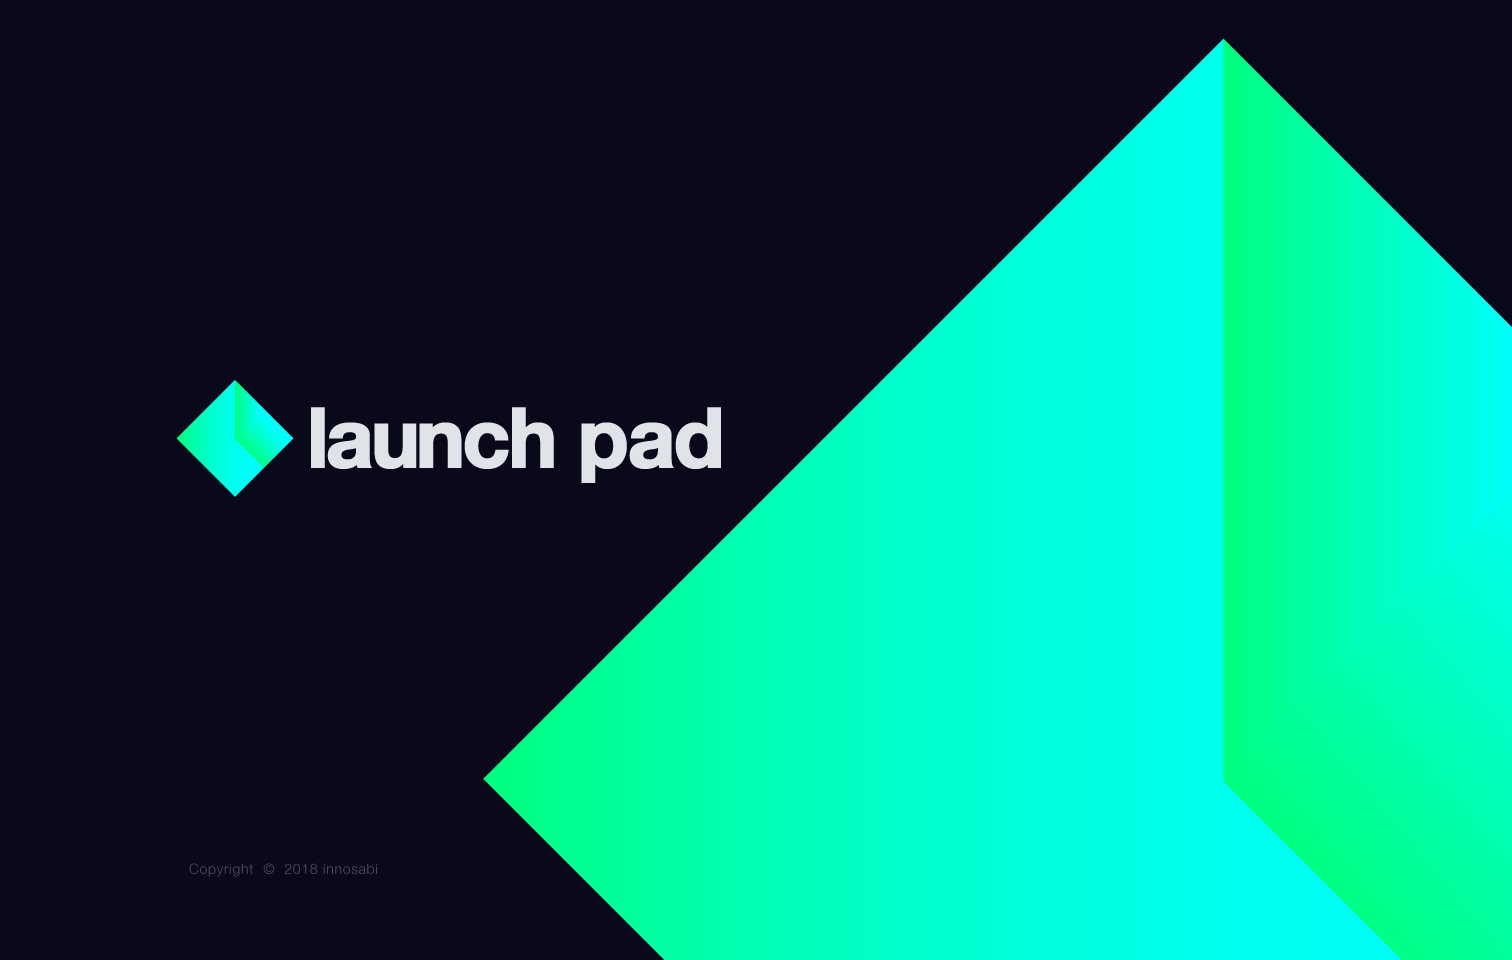 innosabi product branding launch pad